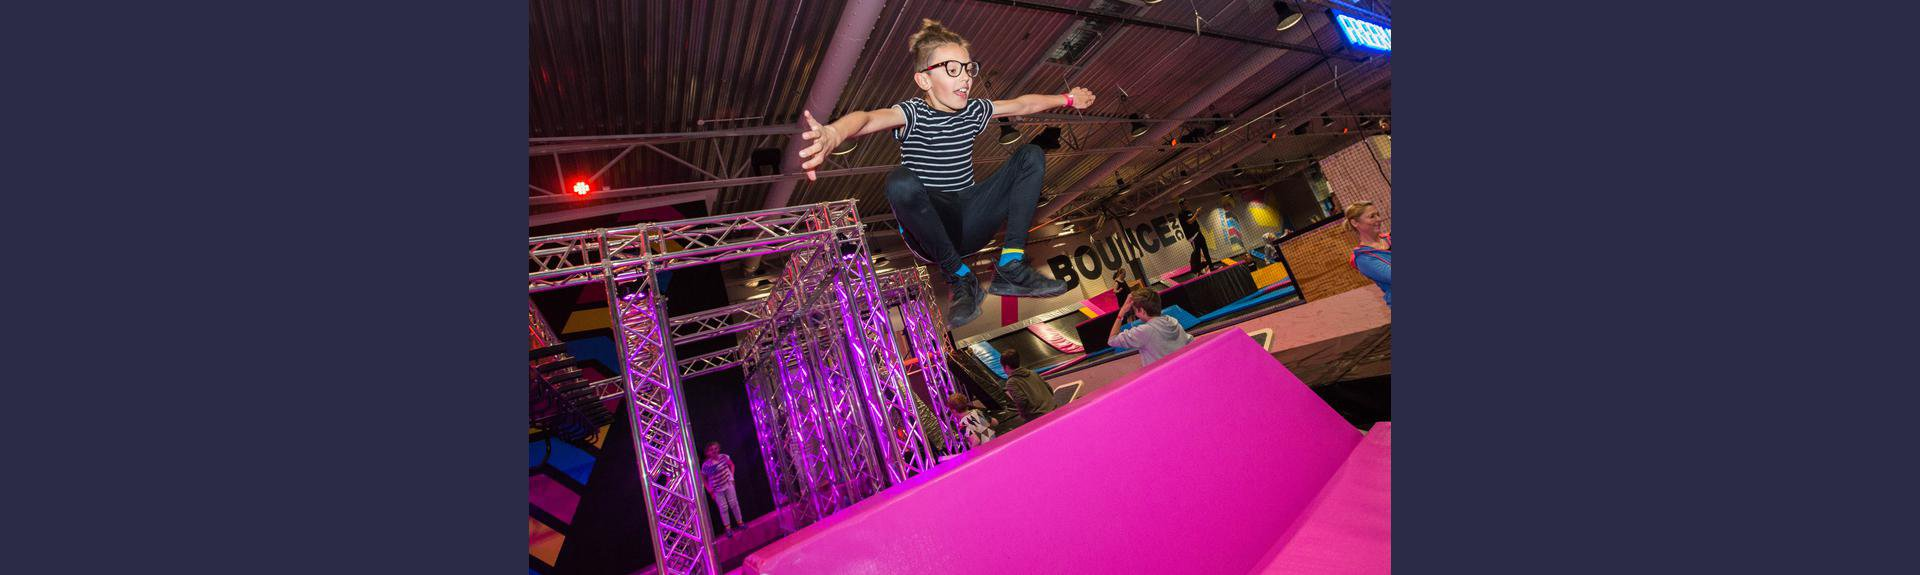 Bounce Indoor Trampoline Park | Waterfall Lifestyle Centre | Midrand